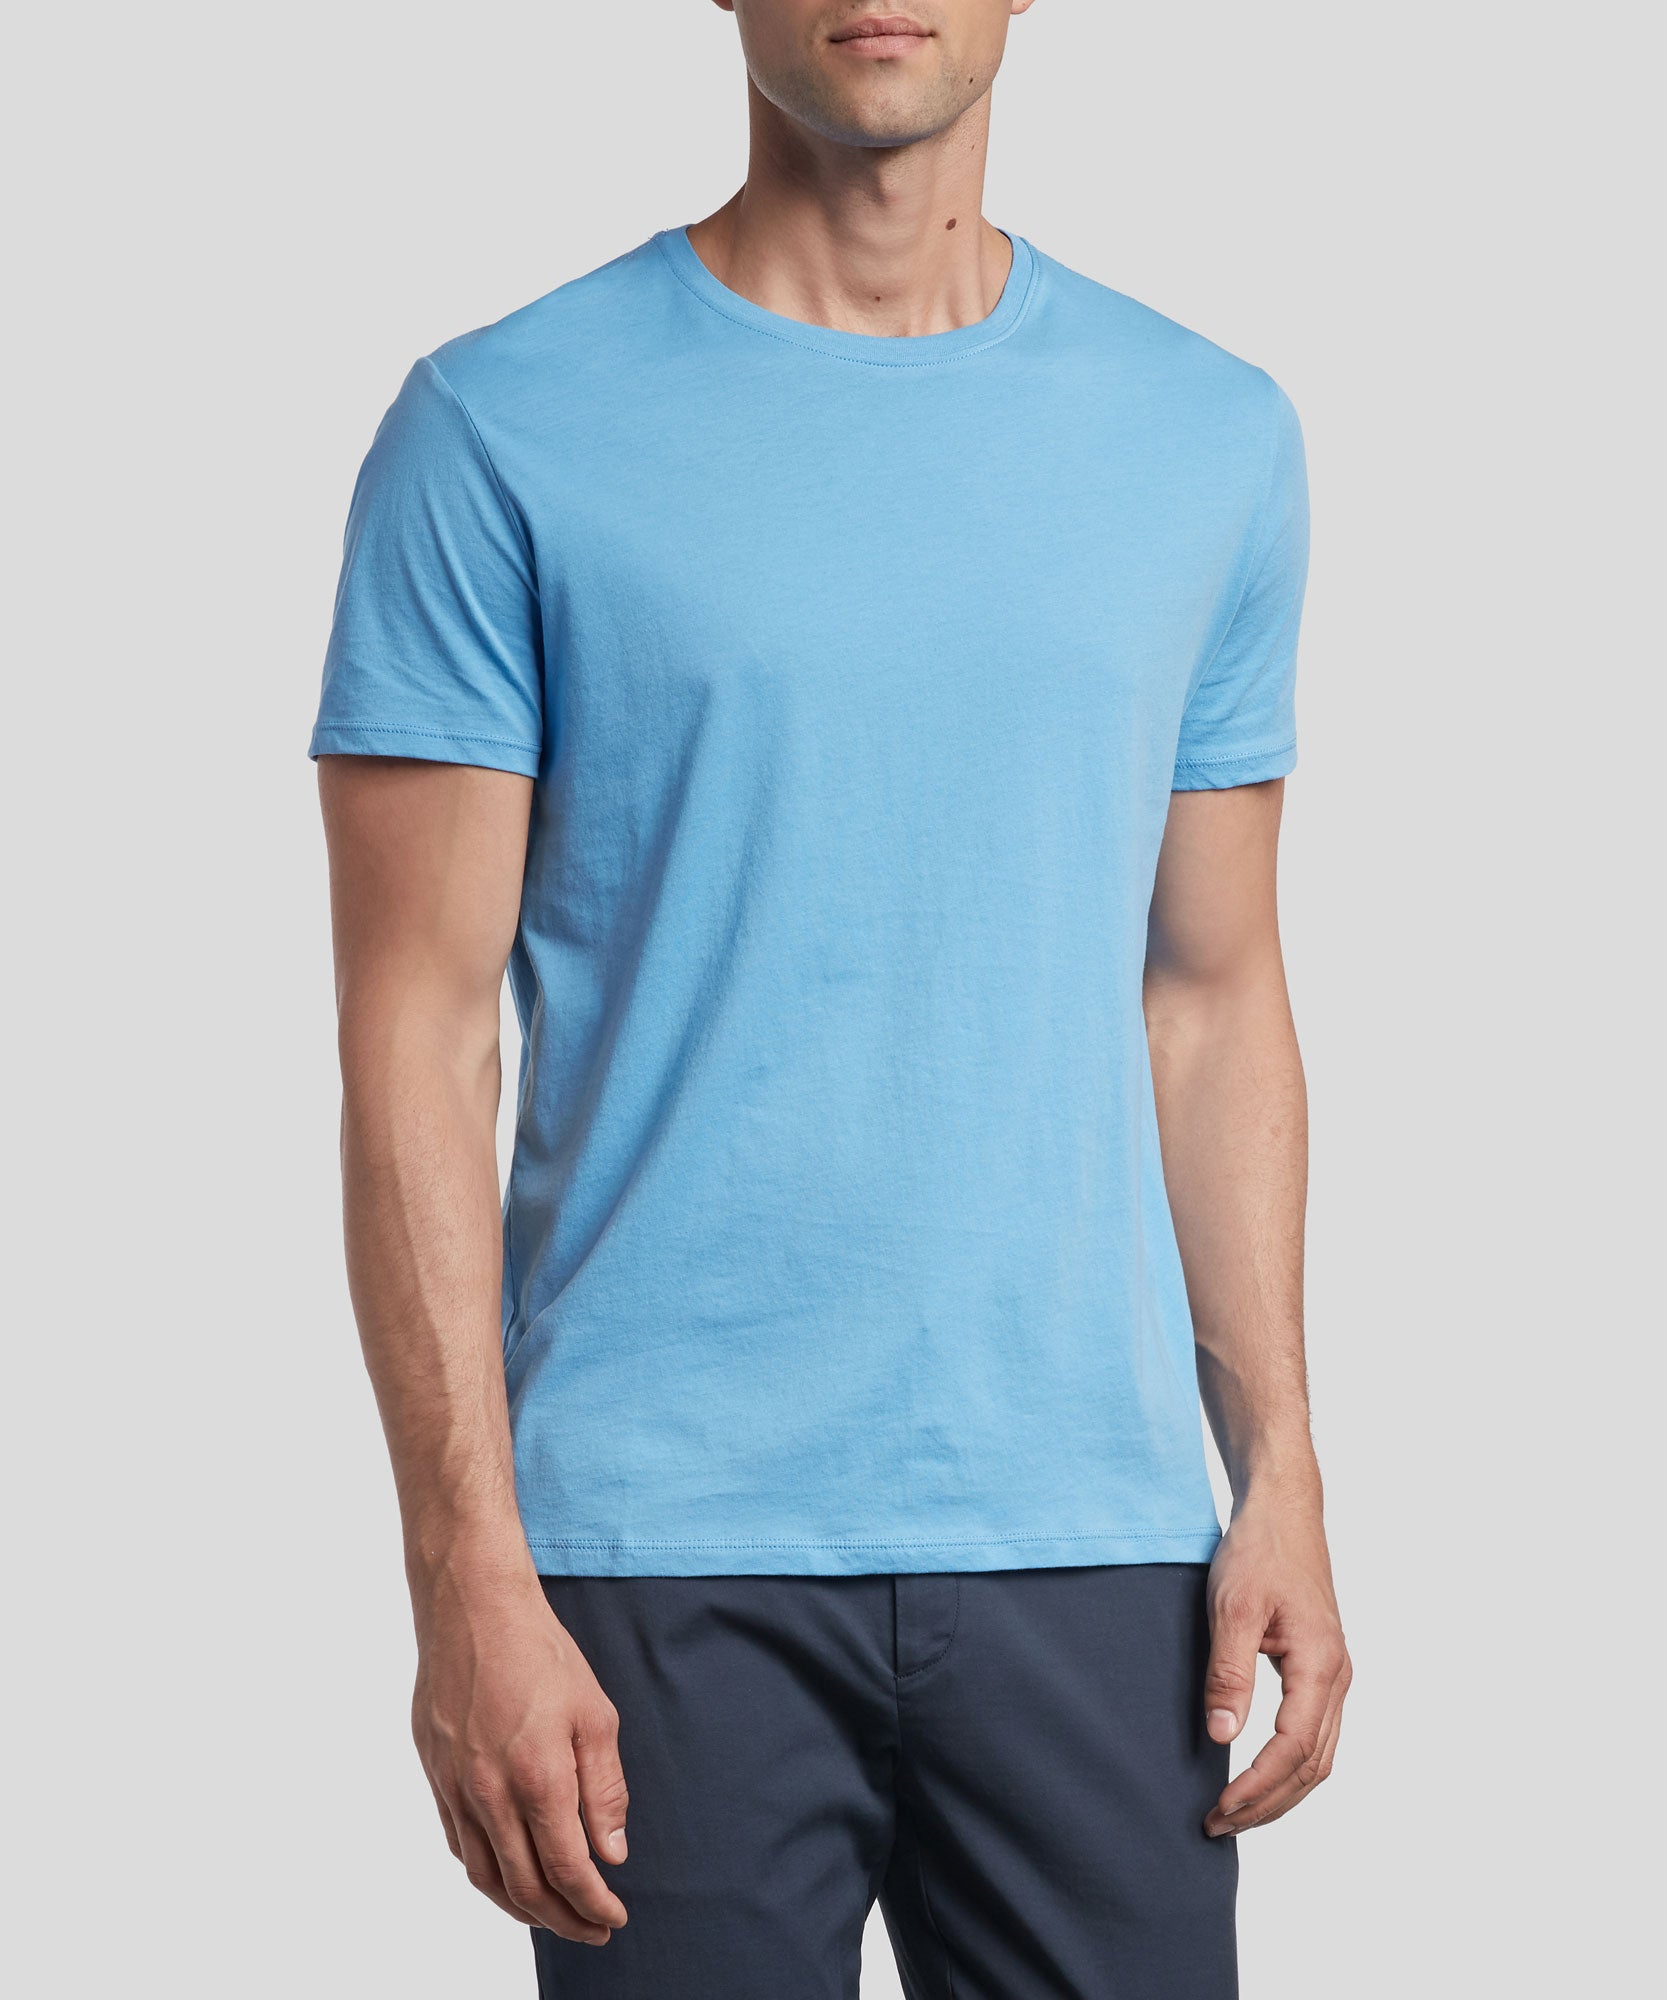 Sky Classic Jersey Crew Neck Tee - Men's Cotton Short Sleeve T-shirt by ATM Anthony Thomas Melillo